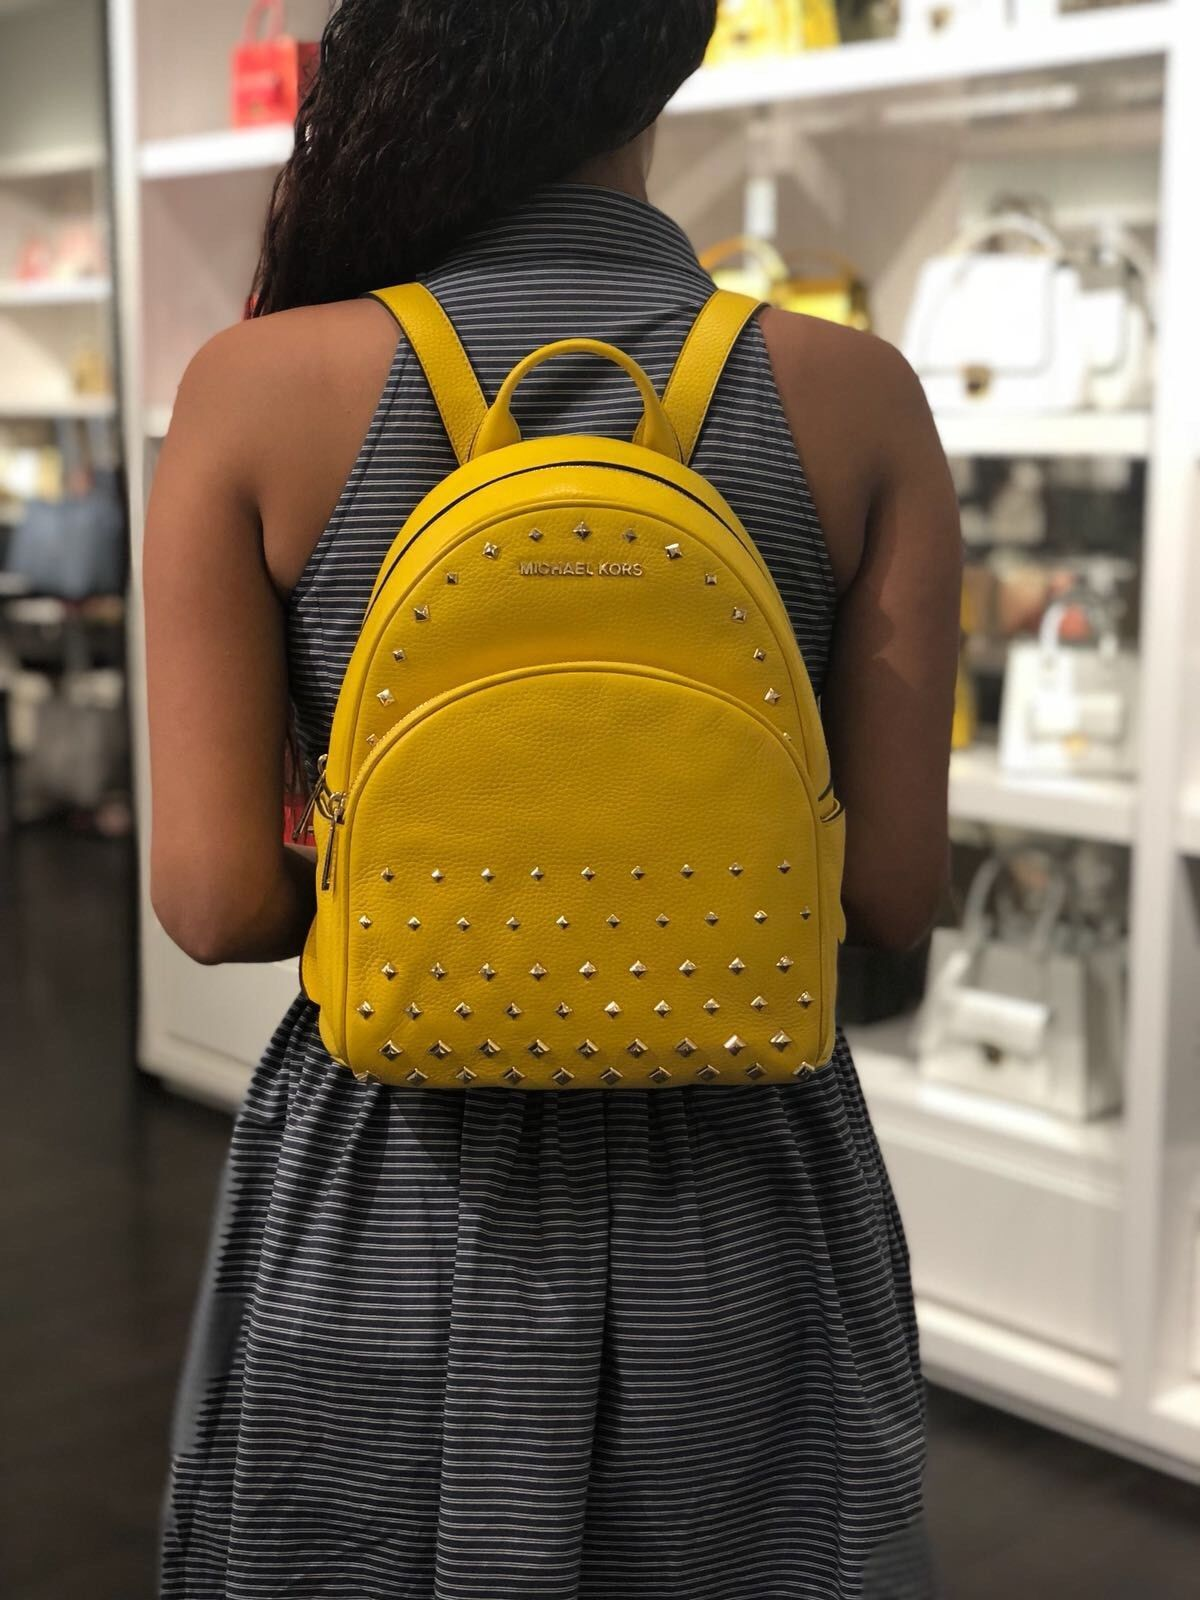 f23a43a16910 S l1600. S l1600. Previous. NWT MICHAEL KORS ABBEY MEDIUM STUDDED BACKPACK  LEATHER CITRUS. NWT MICHAEL ...